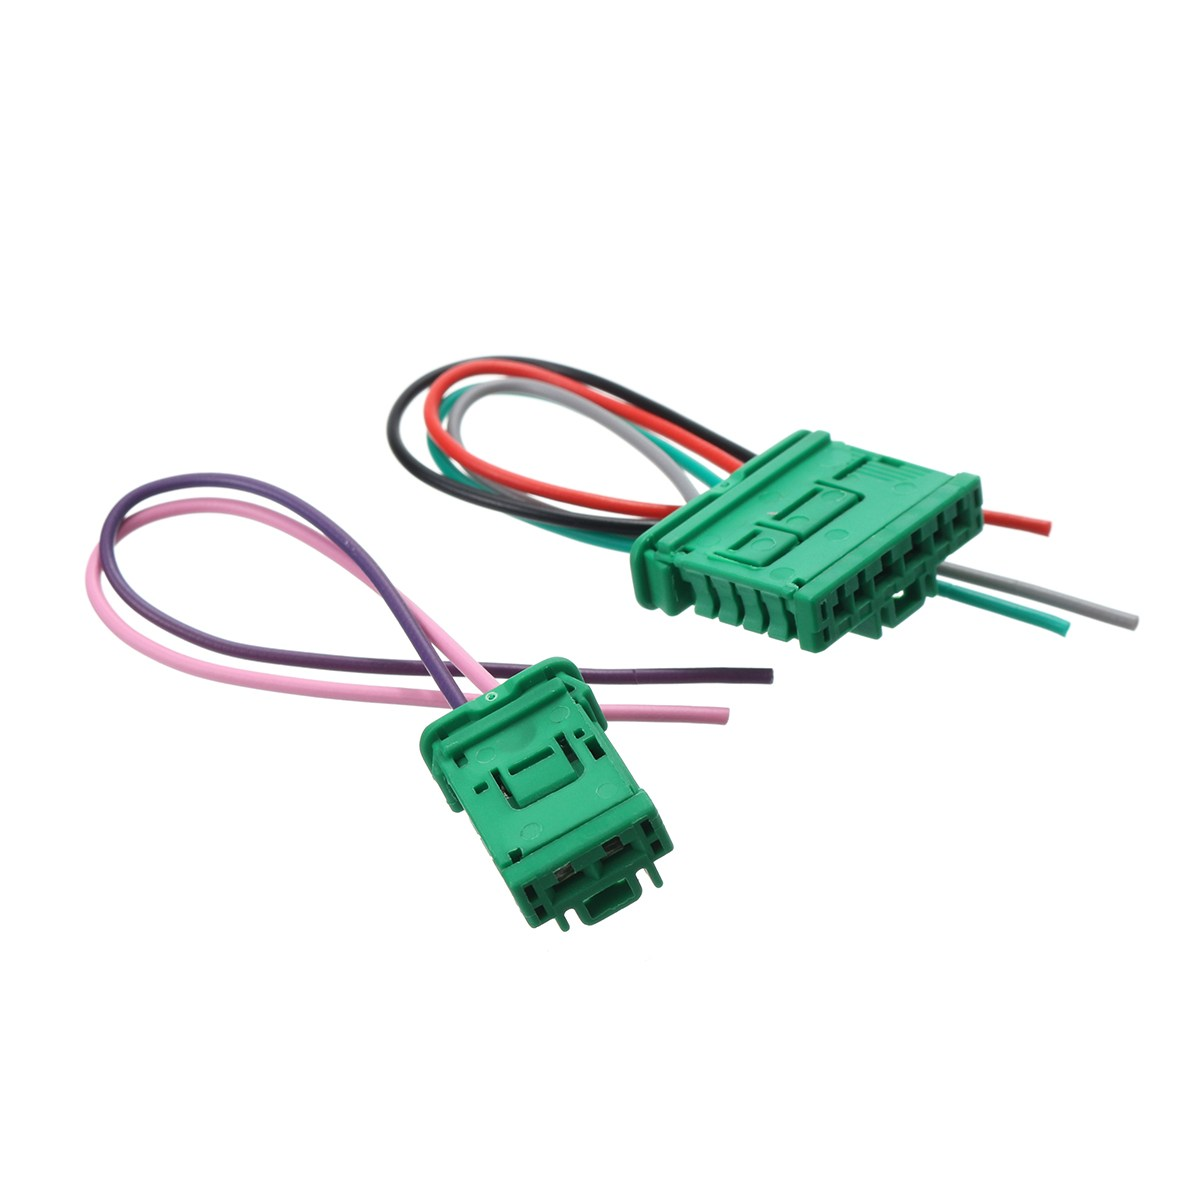 medium resolution of kroak heater resistor wiring harness loom 27150ed70b for citroen for peugeot for for renault for megane for scenic in cables adapters sockets from